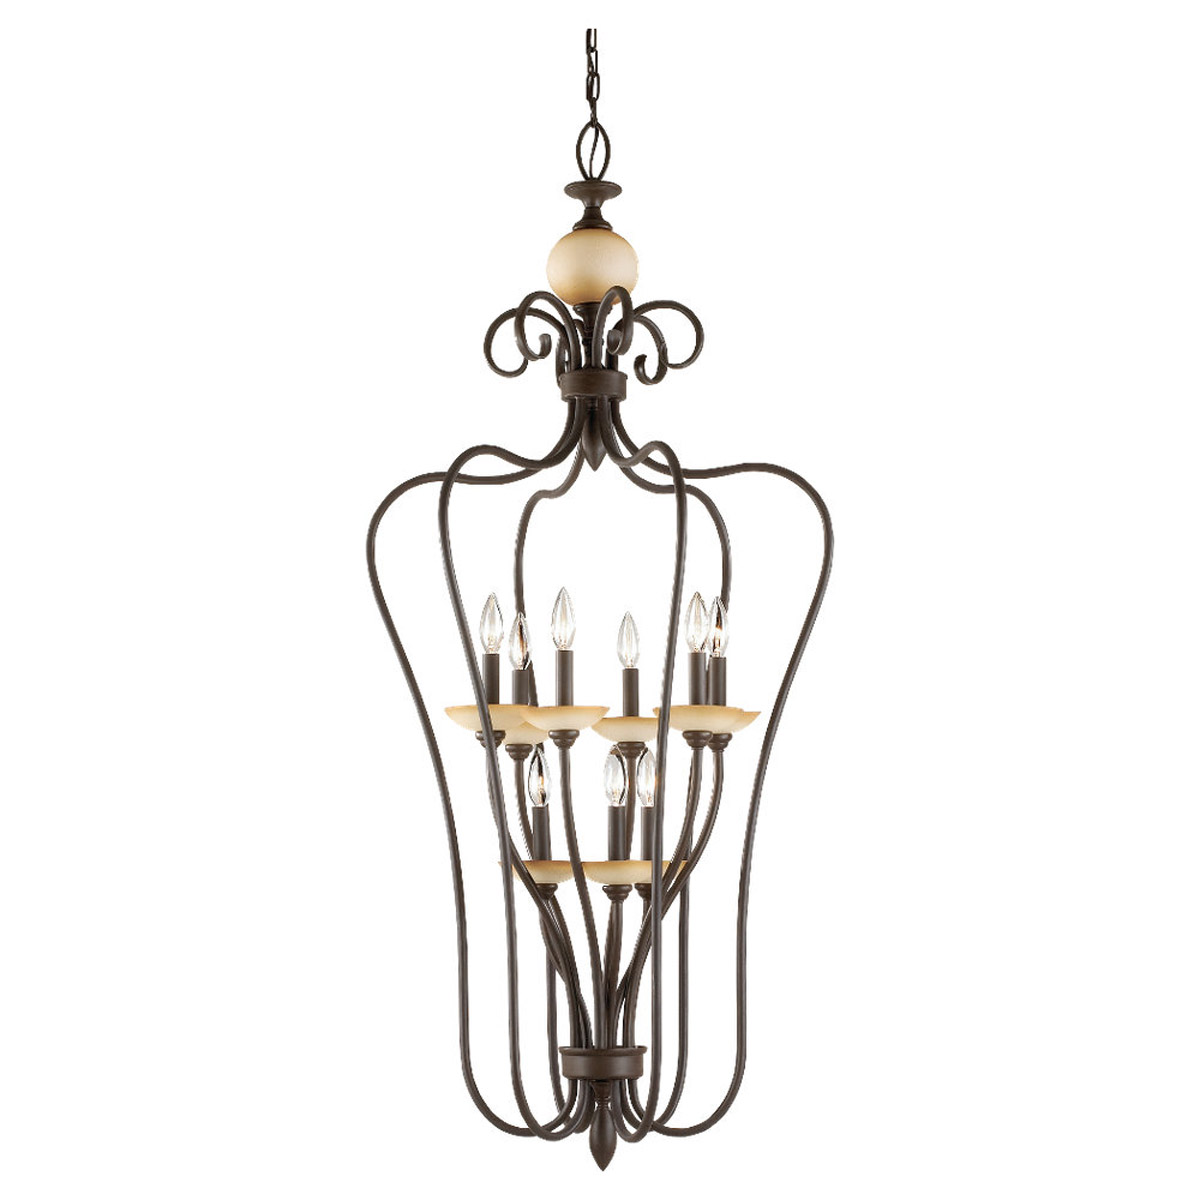 Sea Gull Lighting Montclaire 9 Light Foyer Pendant in Olde Iron 51107-72 photo